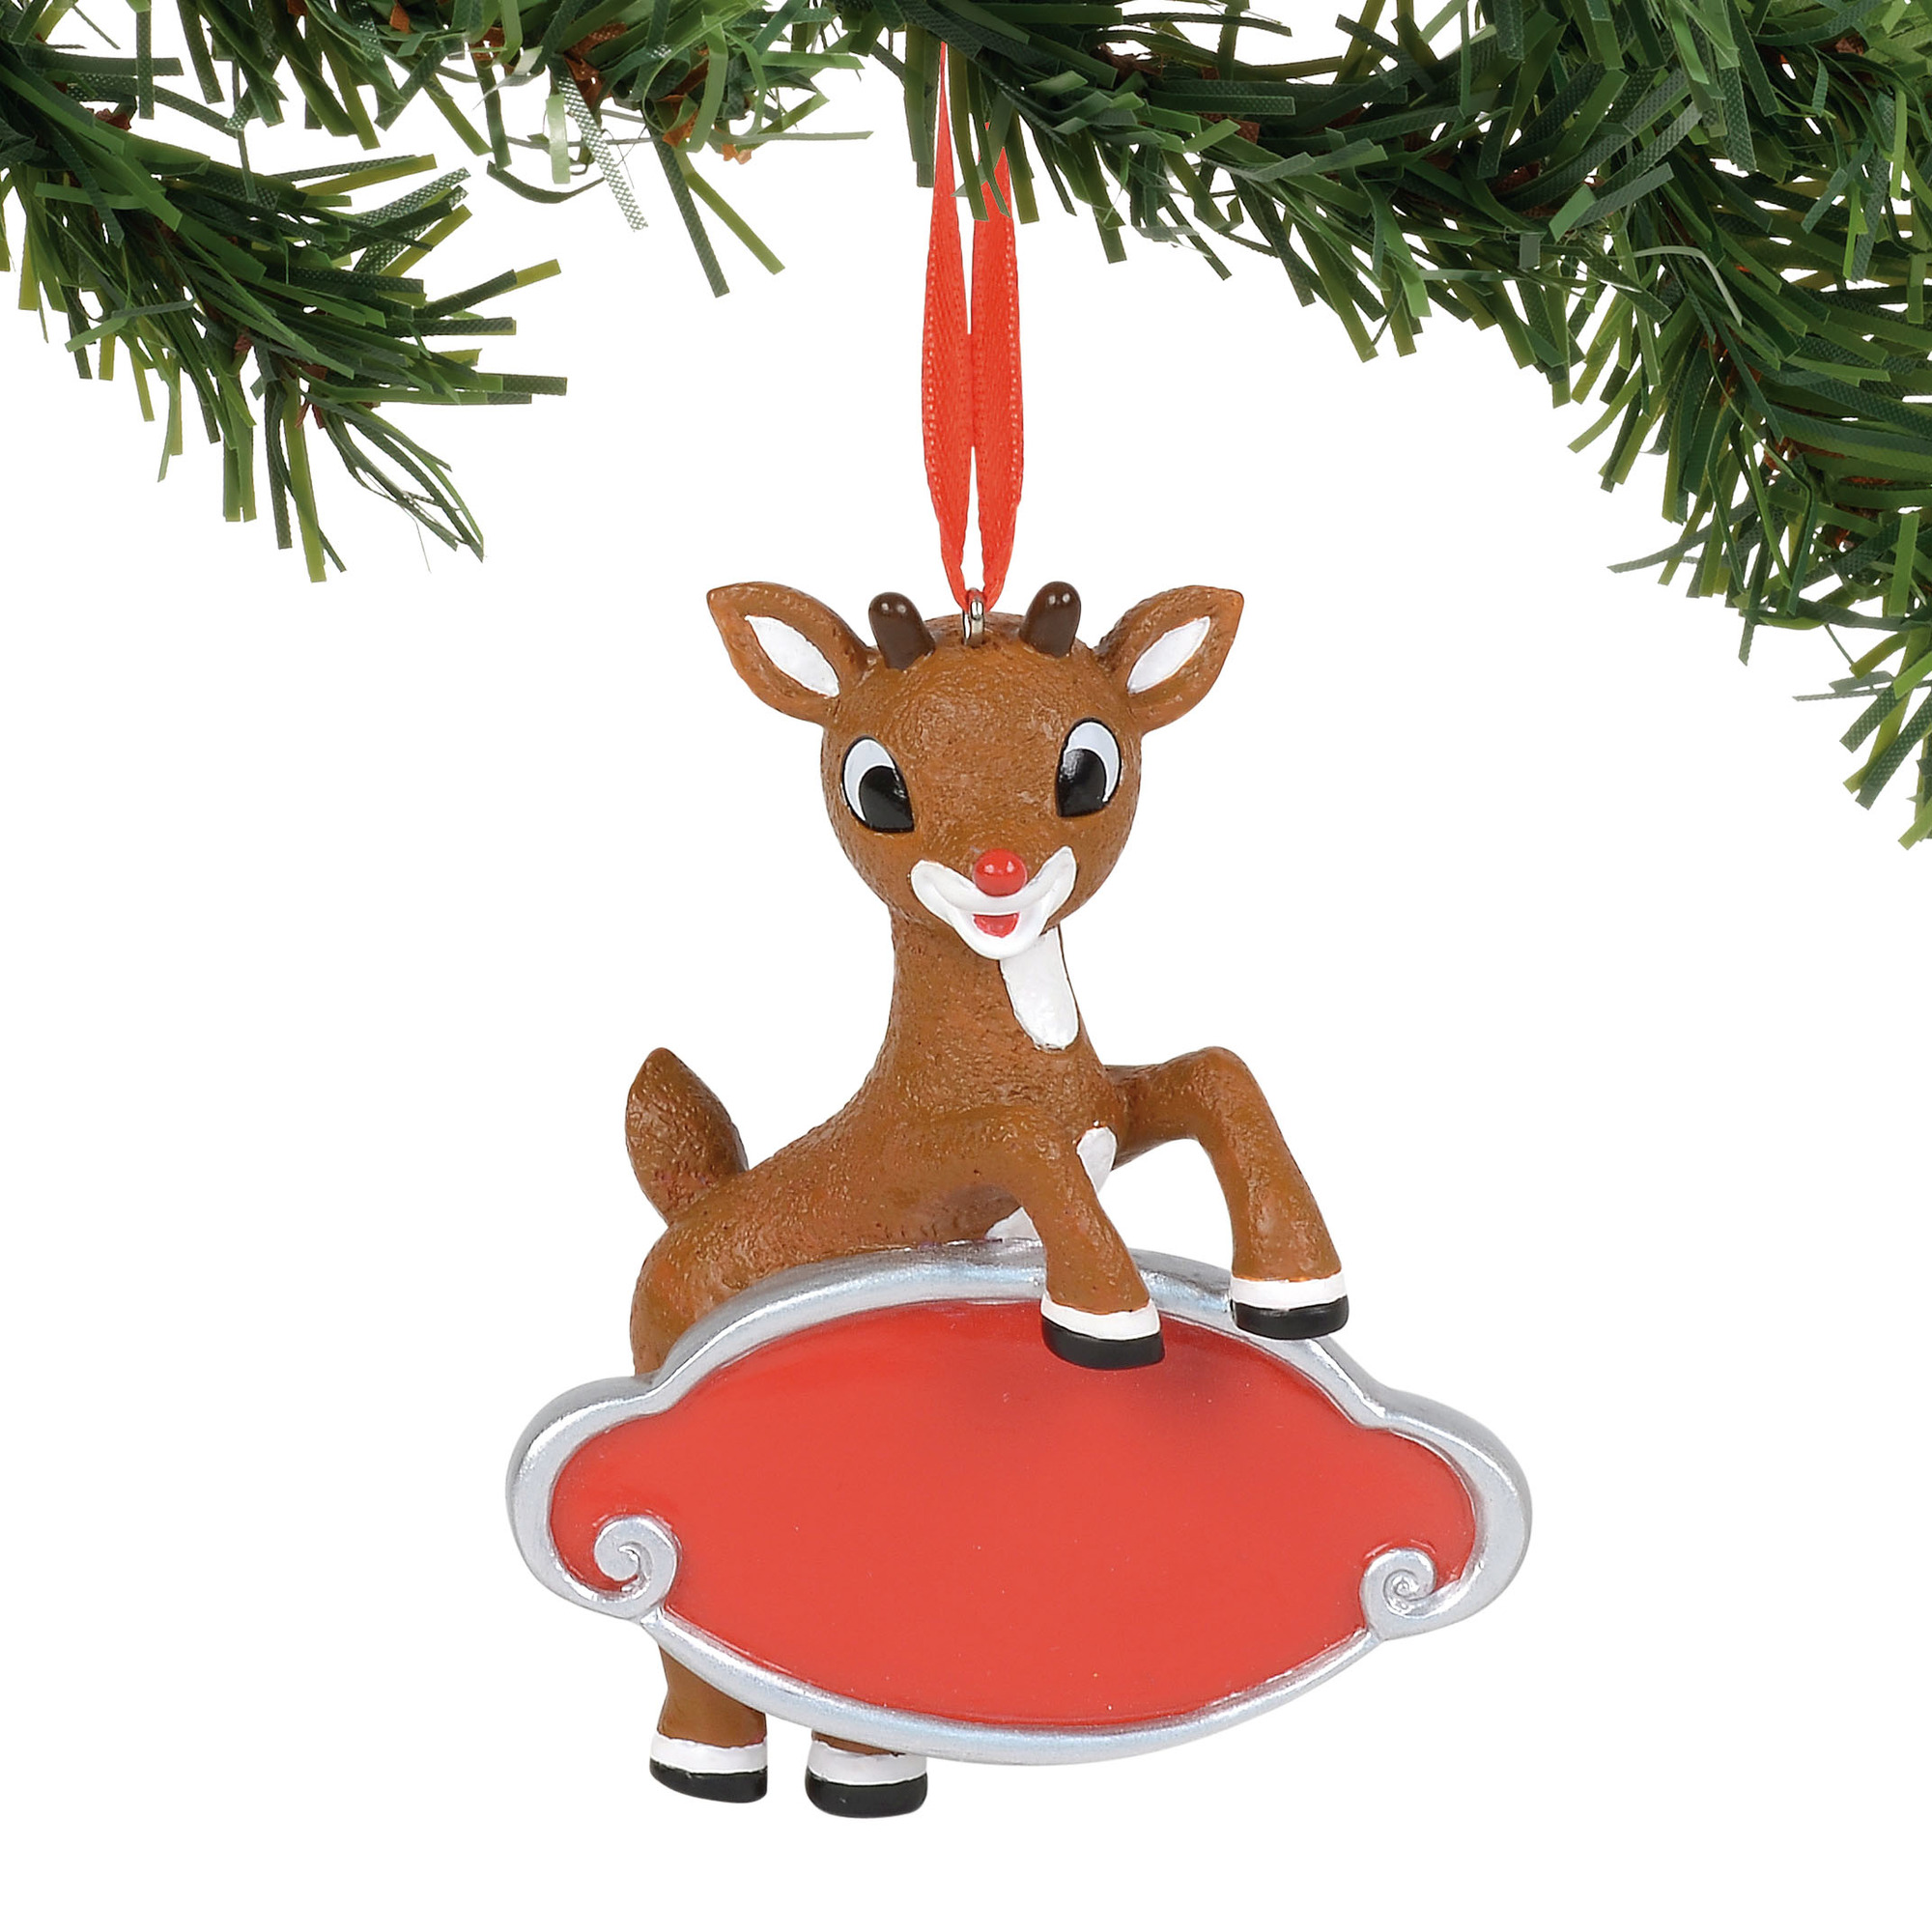 Department 56 Ornament - Rudolph - Personalizable Rudolph